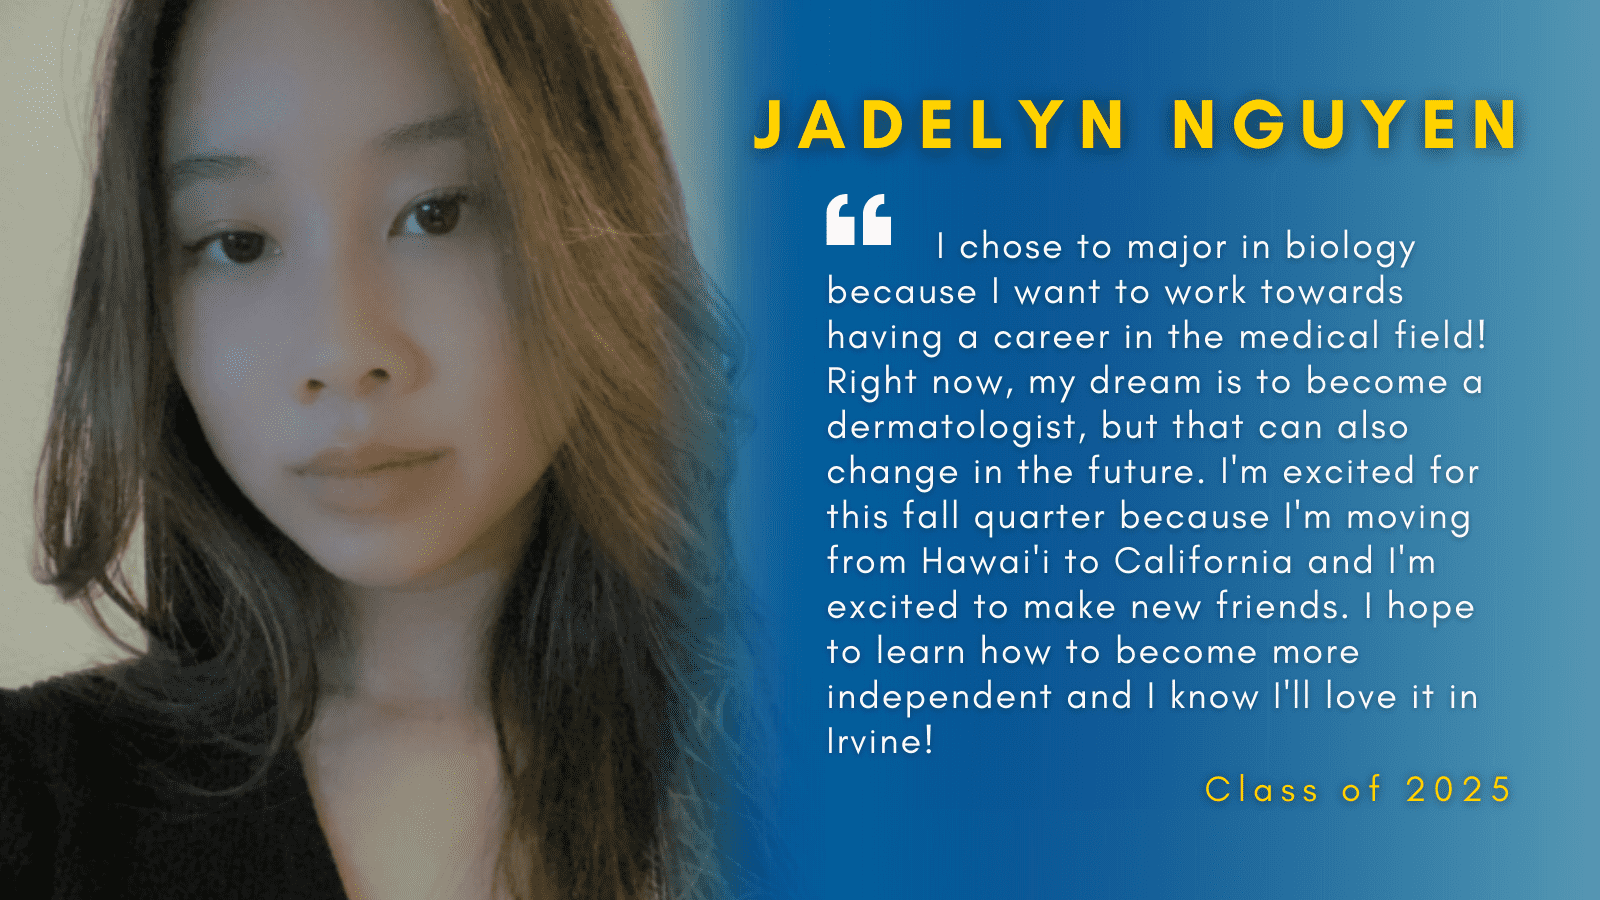 Image of Jadelyn Nguyen with her quote.